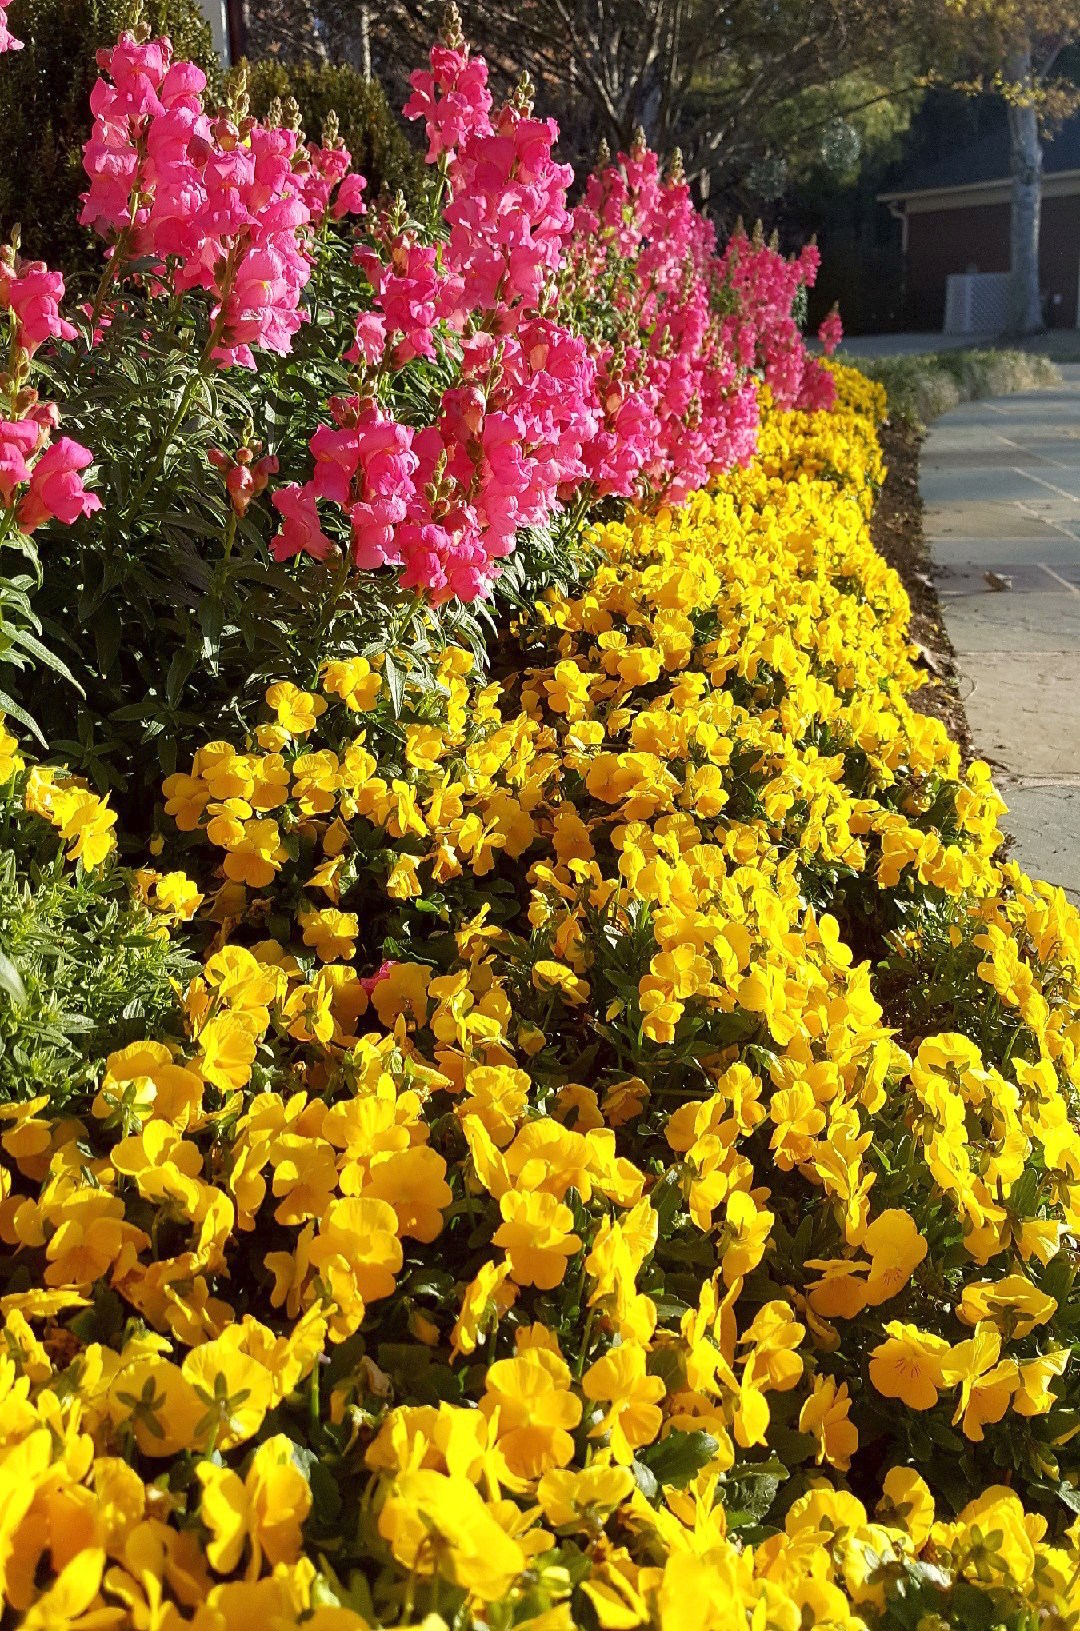 Yellow Colormax violas yield a dazzling number of flowers per square foot. Here they are partnered with Sonnet snapdragons for a colorful cool-season landscape.